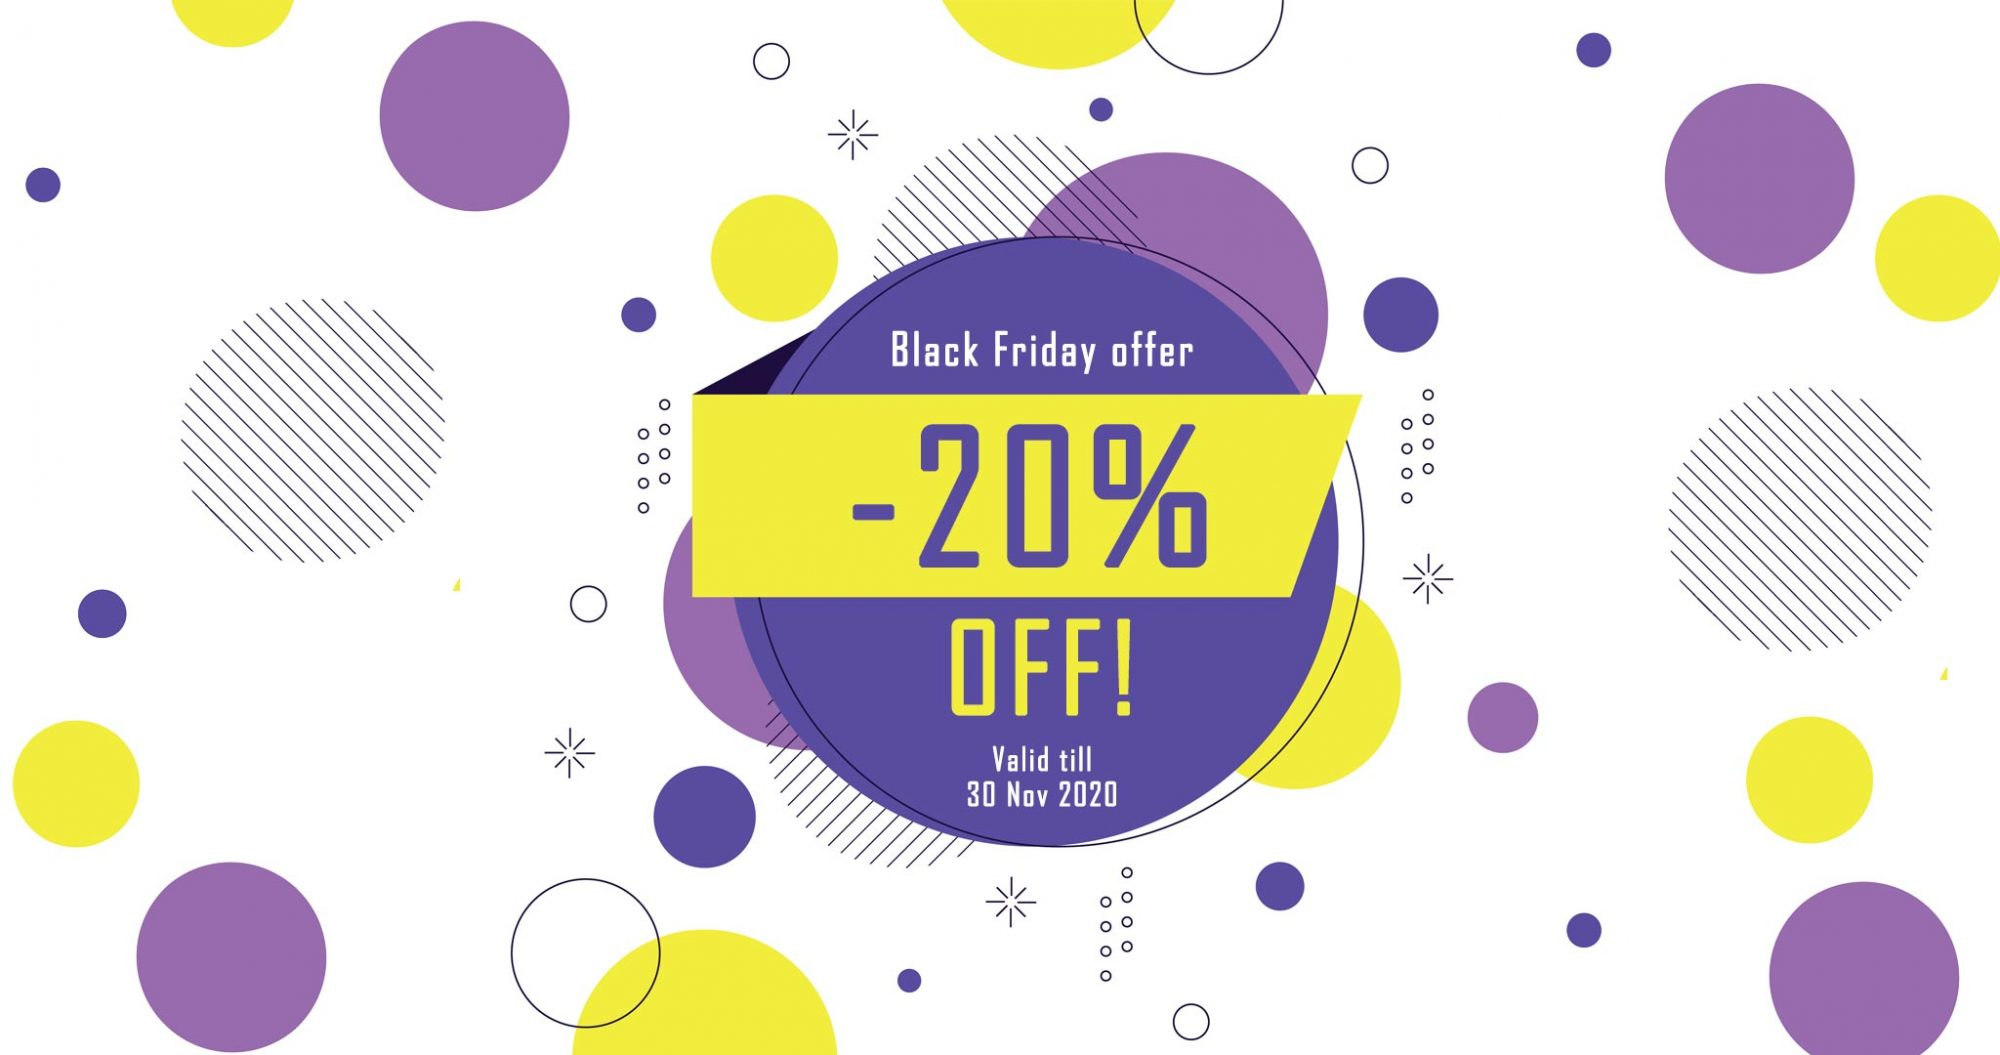 black-friday-2020-saas-deal-20off-contactpigeon-3